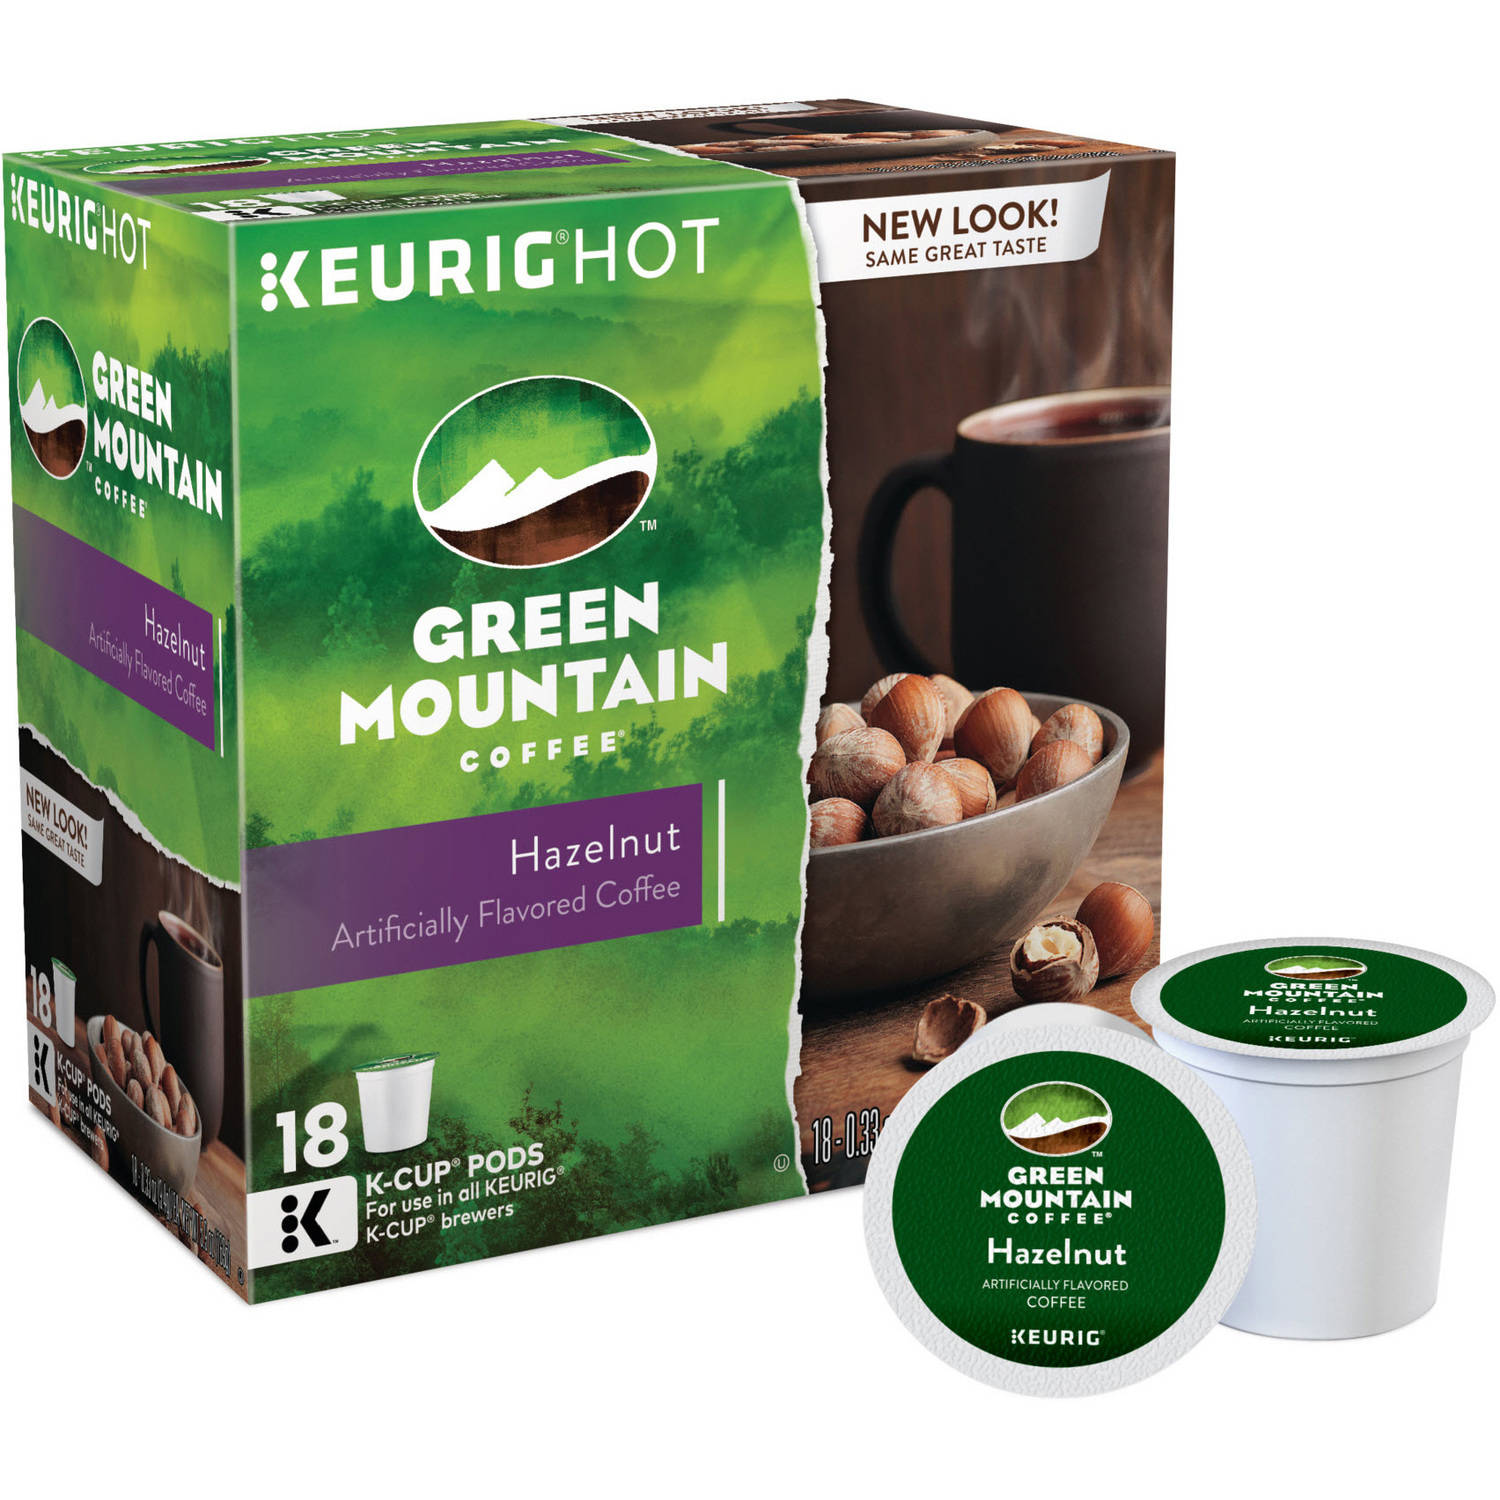 Green Mountain Coffee Hazelnut Light Roast K-Cups Coffee, 18 count